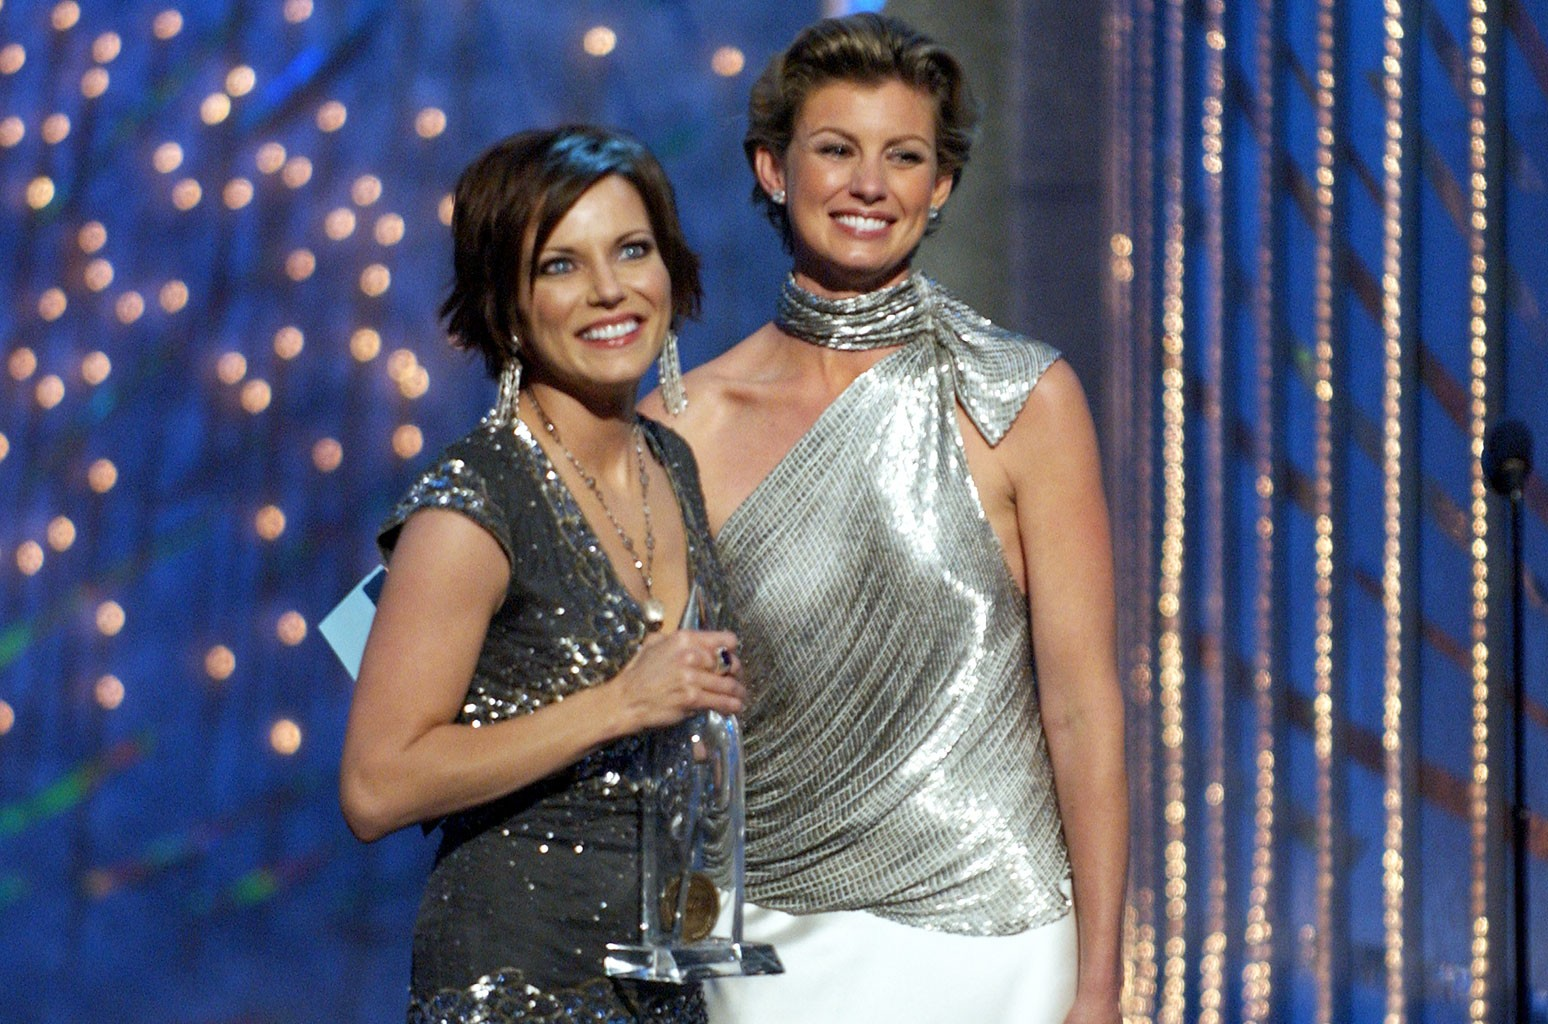 Martina McBride and Faith Hill